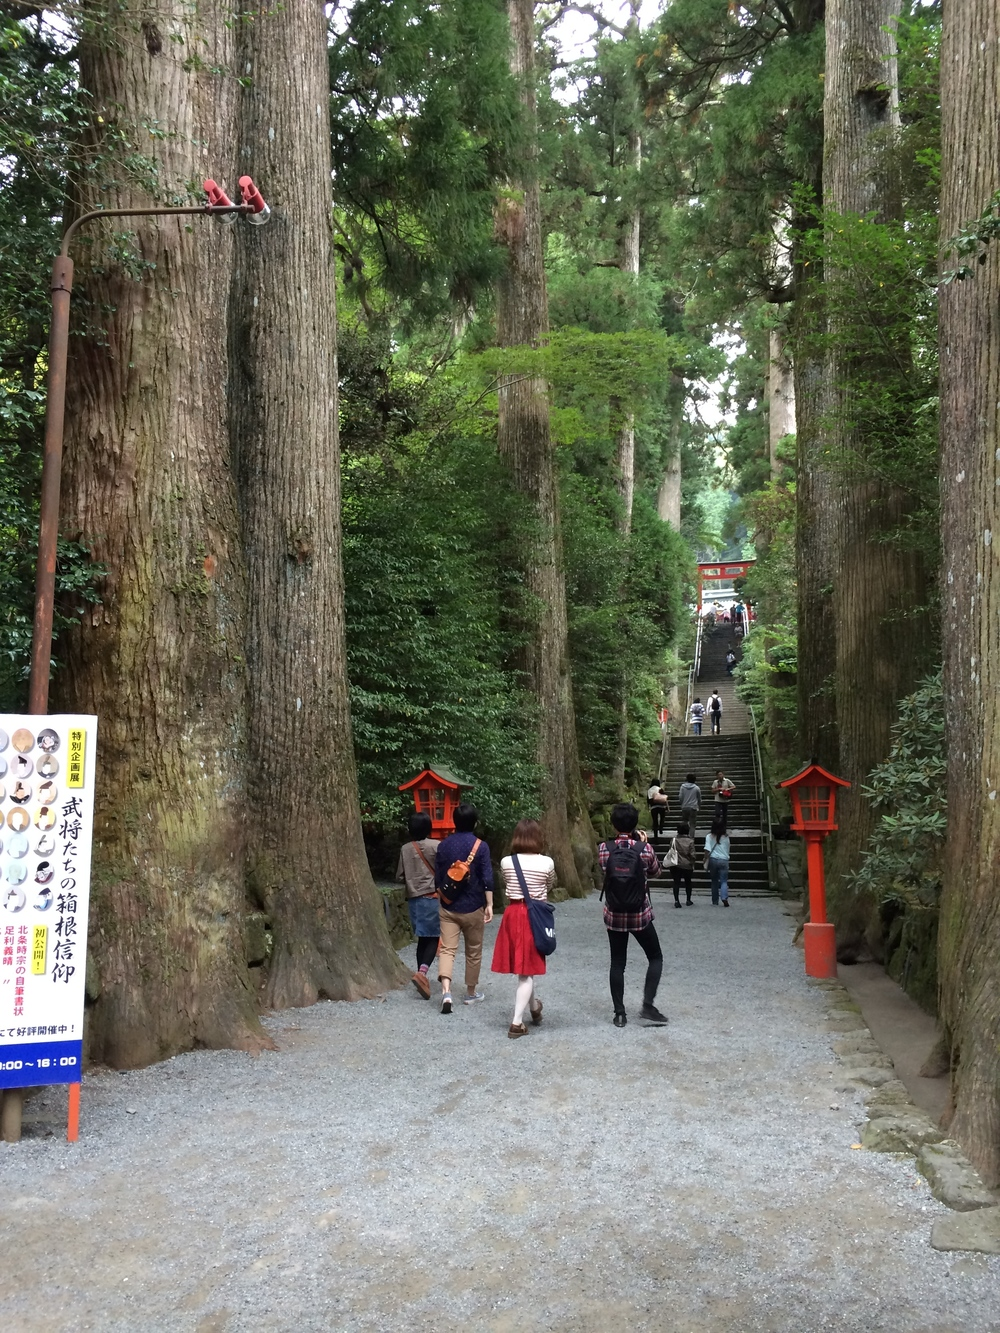 Entrance to Hakone Shrine